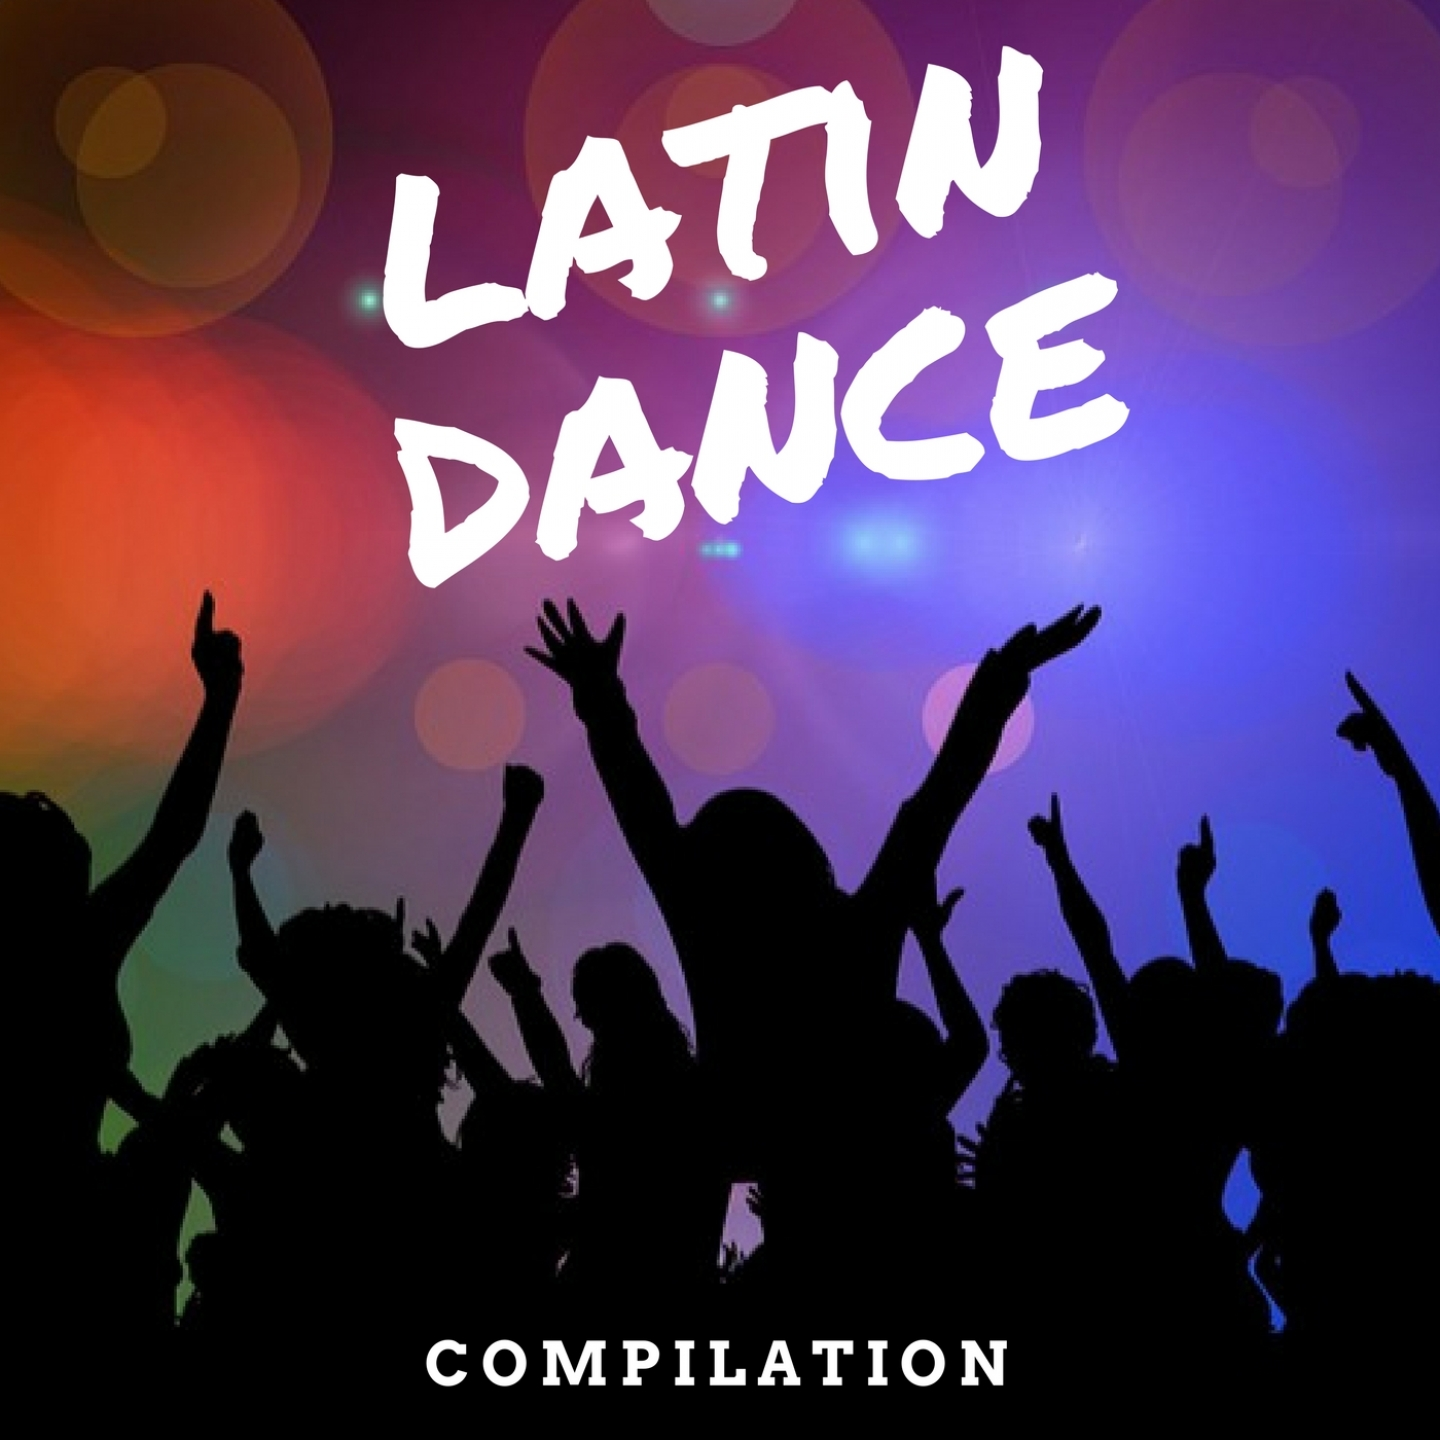 Latin Dance Compilation